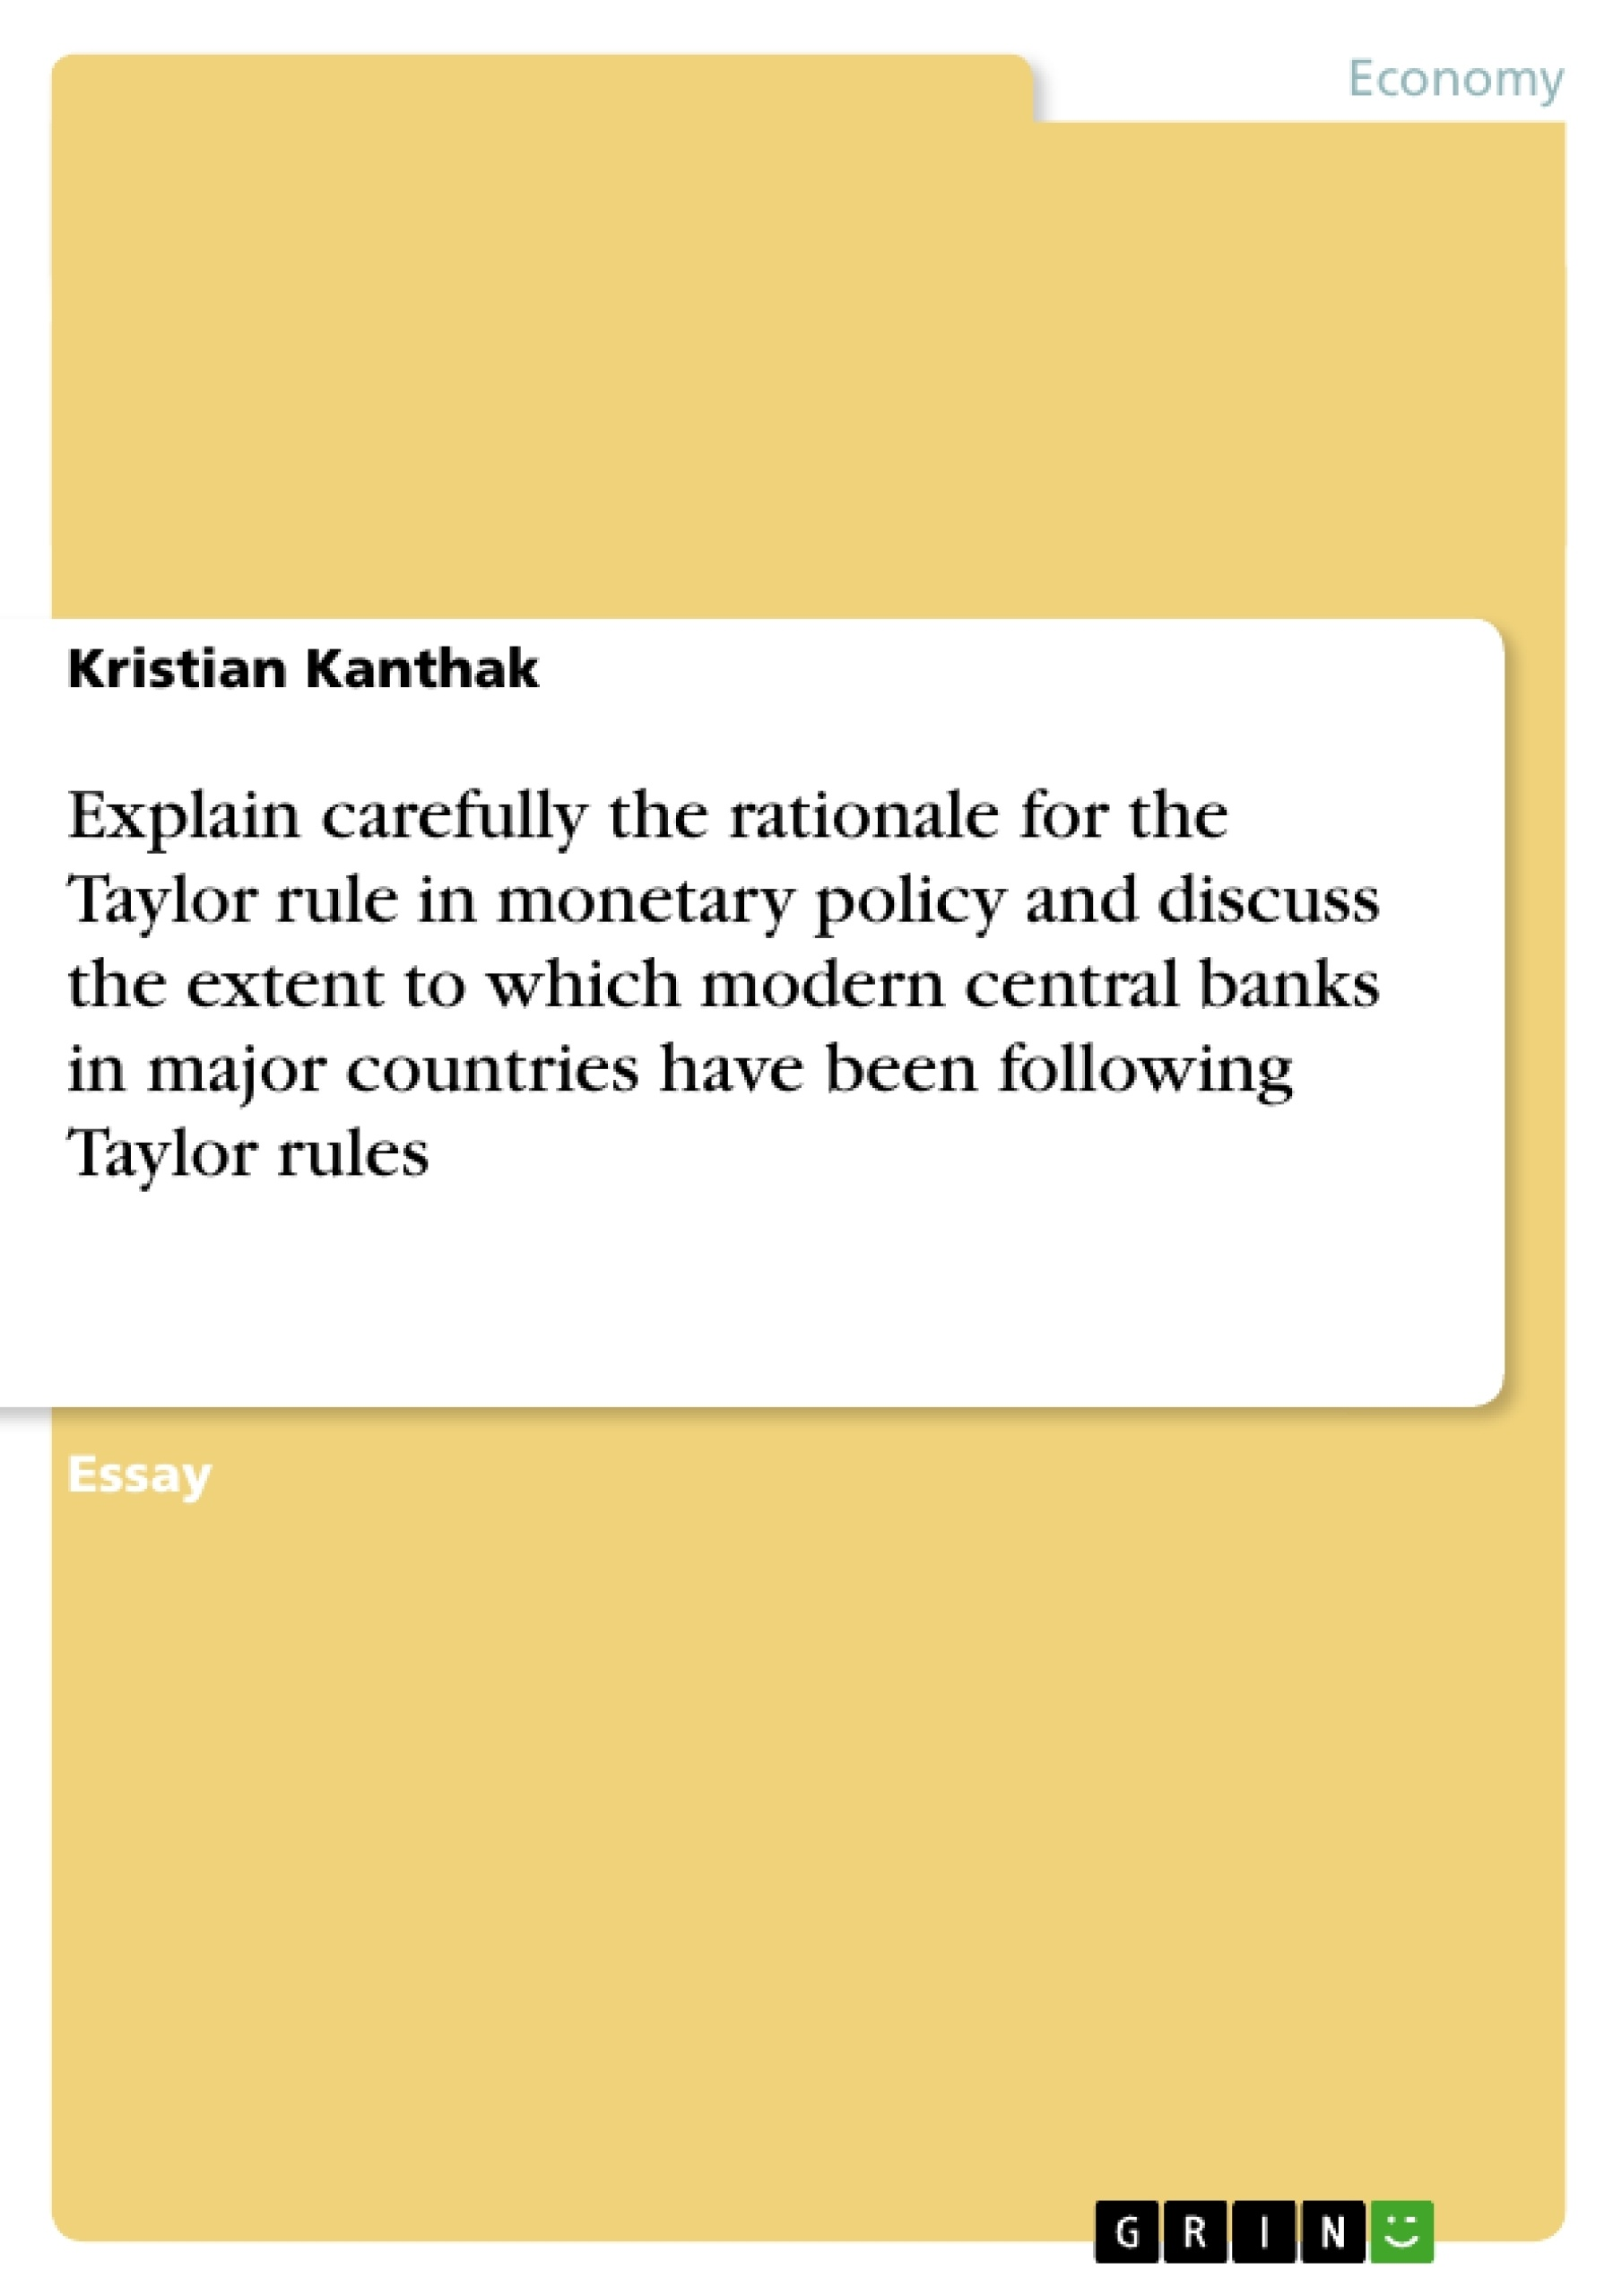 monetary policy essay order essay online cheap monetary policy  explain carefully the rationale for the taylor rule in monetary explain carefully the rationale for the